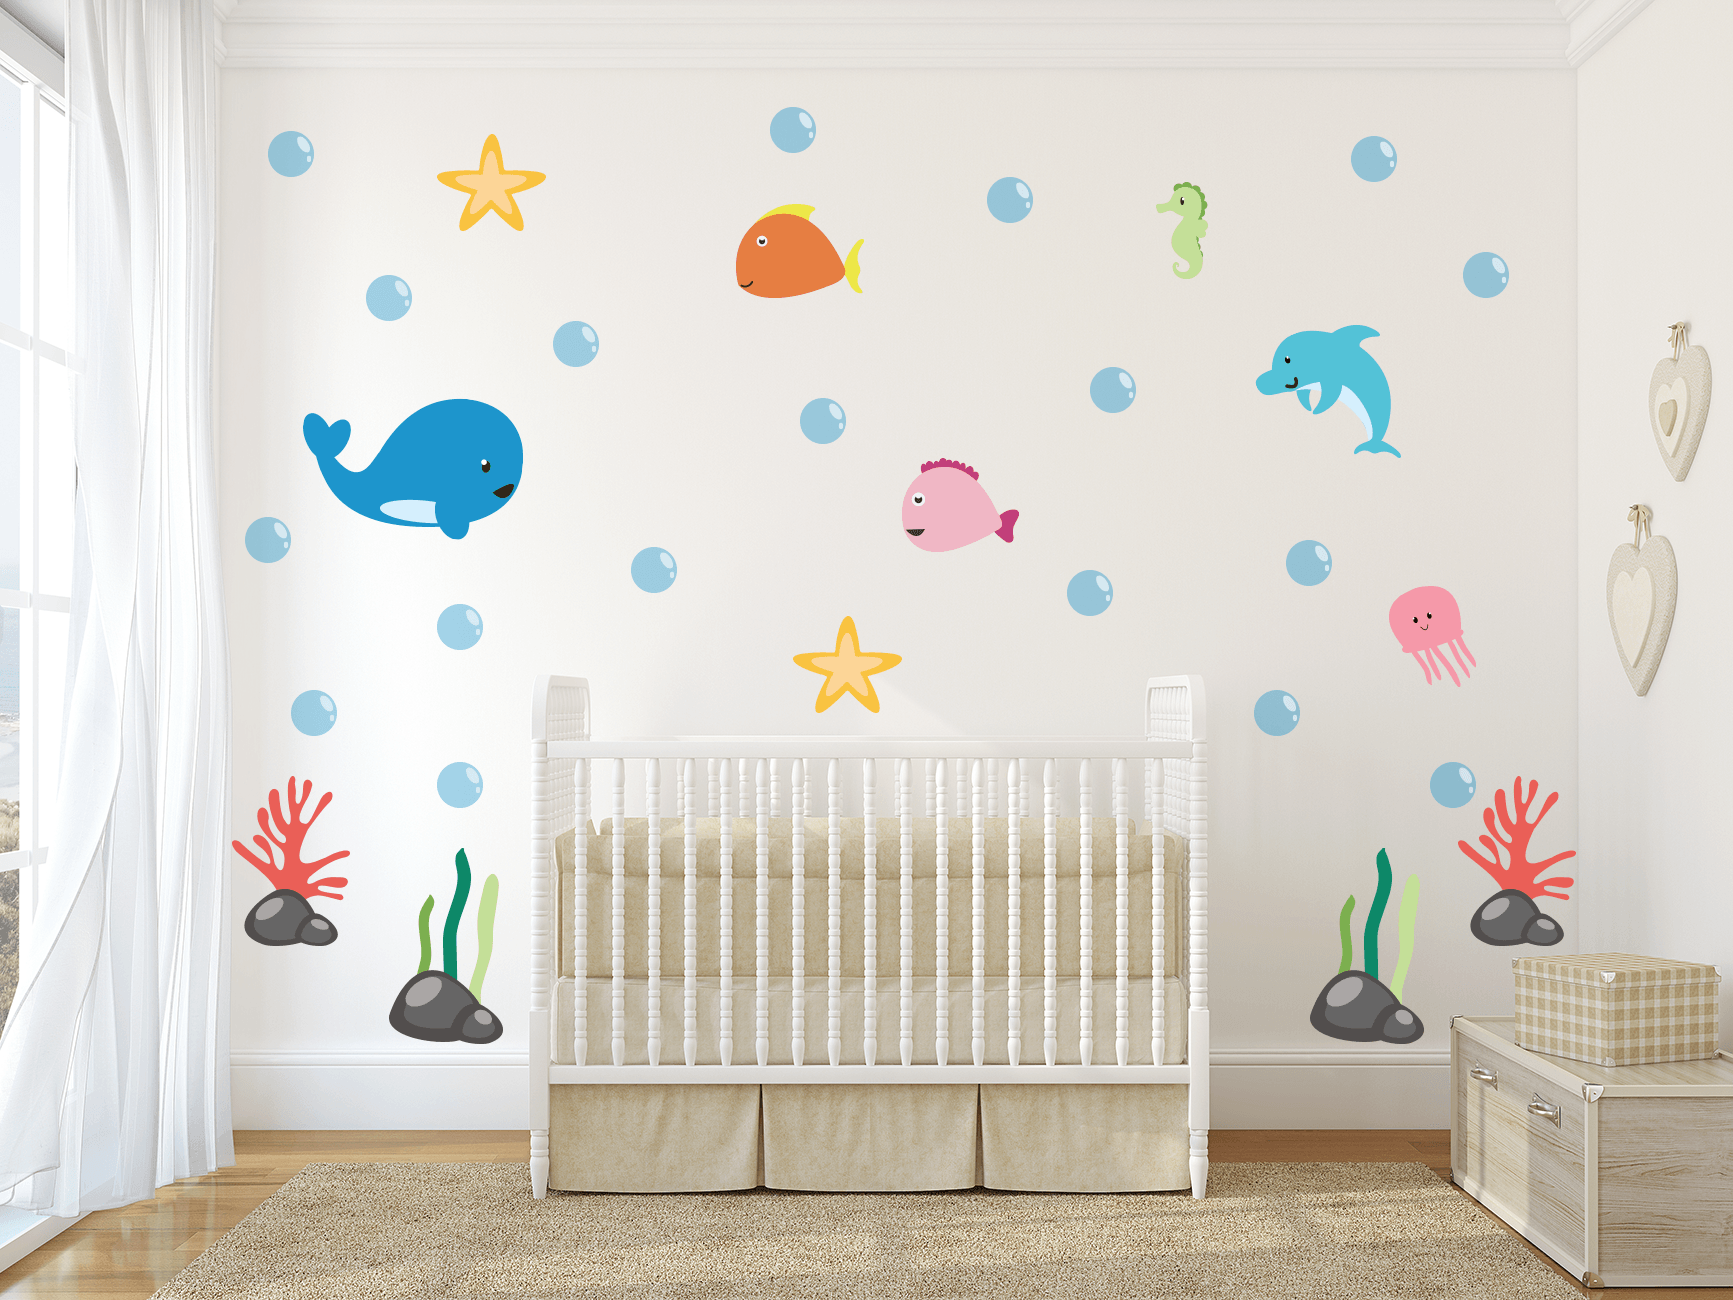 Under The Sea Theme Nursery Wall Art - Ocean Life Vinyl Wall Decals Fo - Kinacle